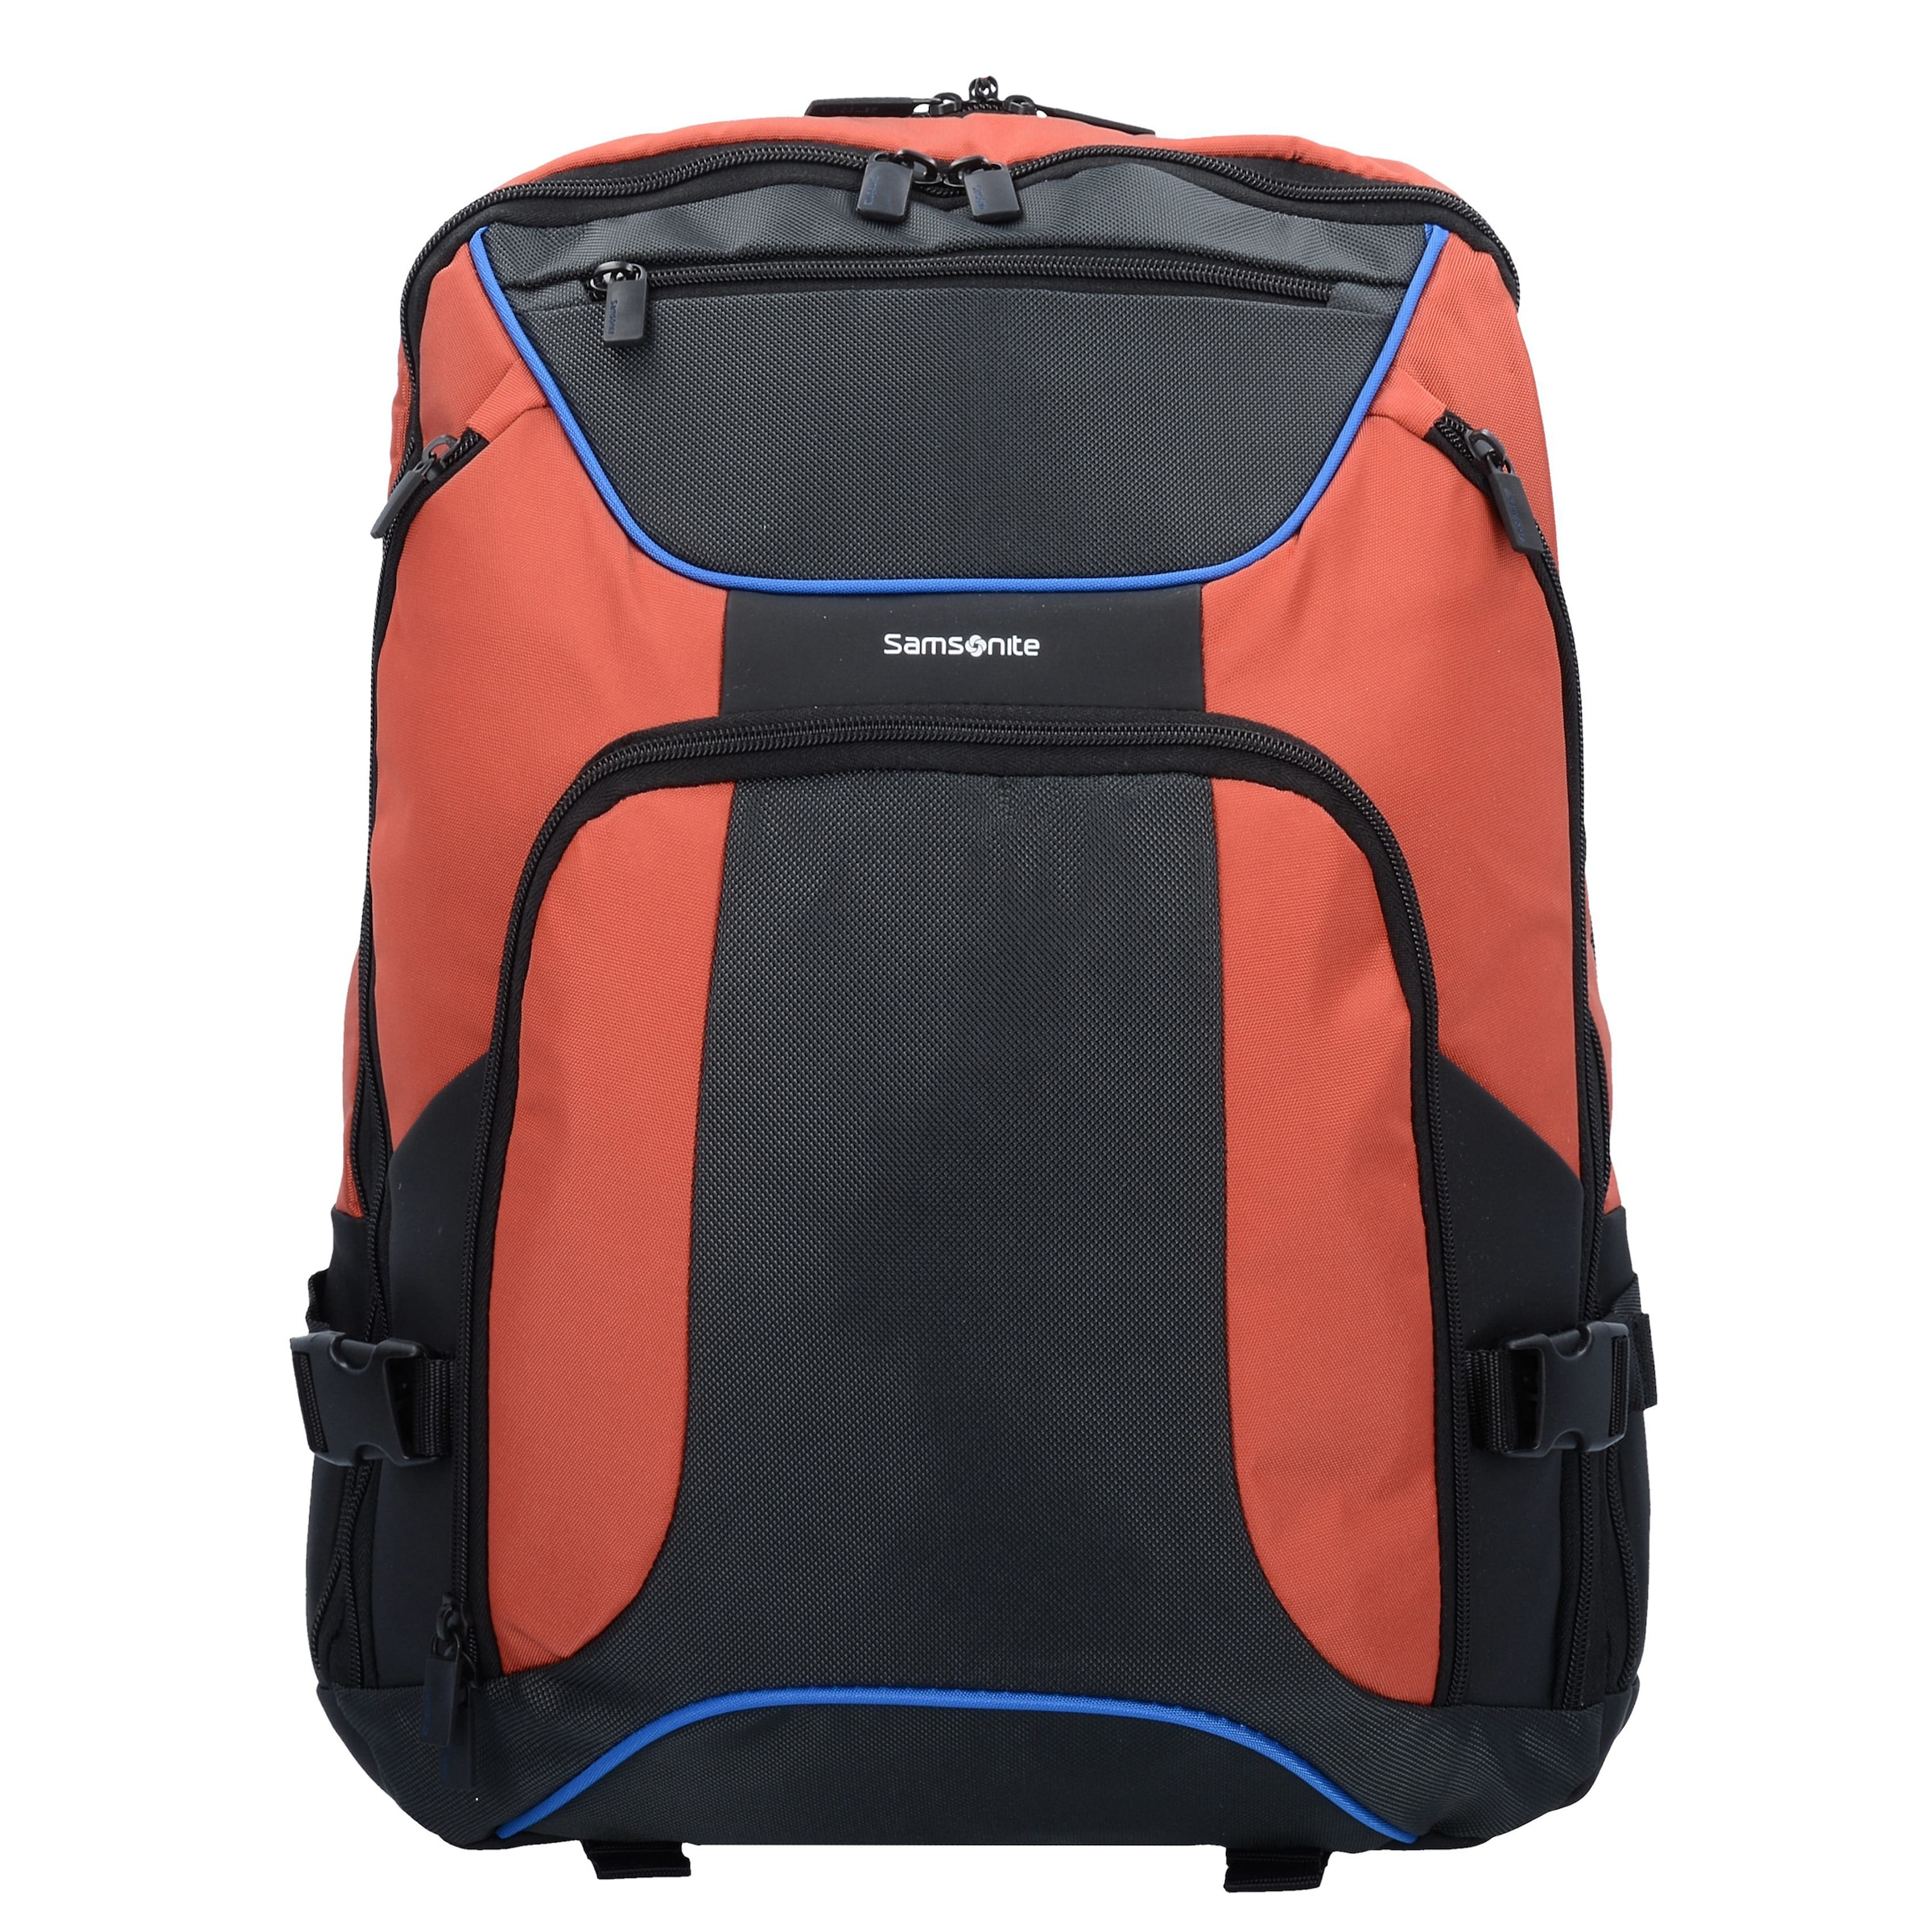 Cm Business AnthrazitOrange 48 In Rucksack 'kleur' Samsonite yIbf7v6Yg